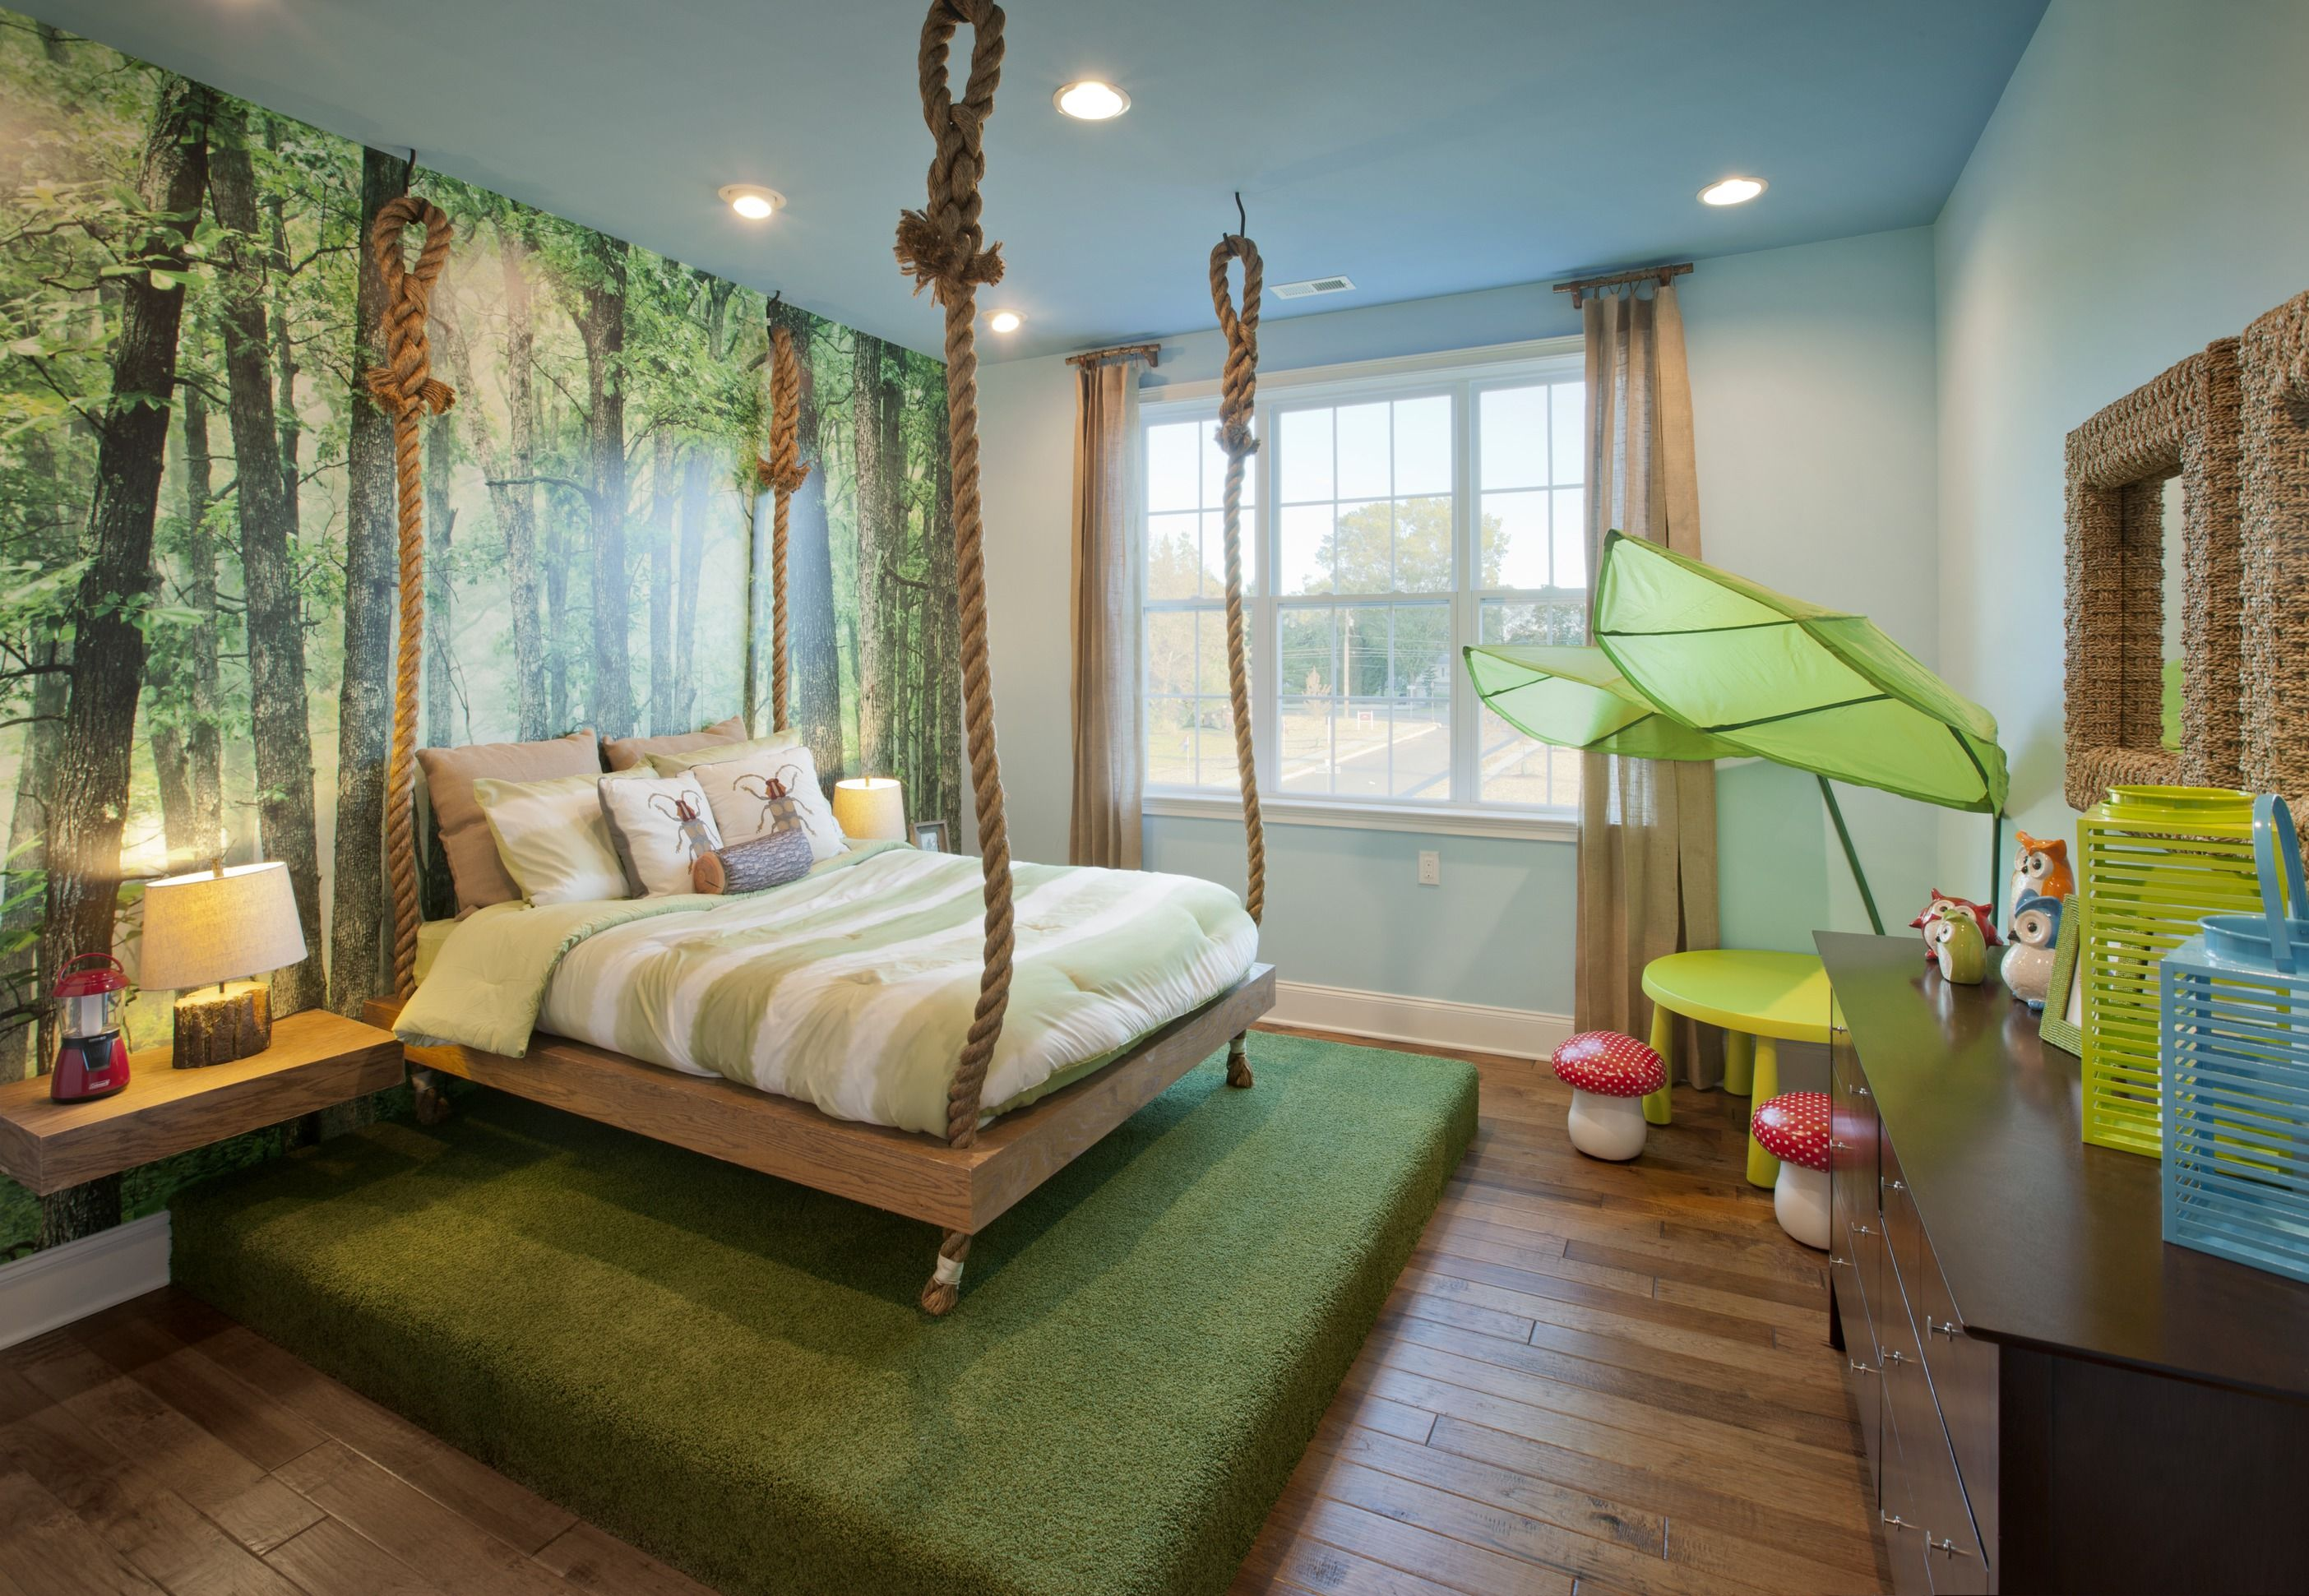 Journey Into This Jungle Themed Kid S Room The Chelsea Horsham Valley Estates Pa Kids Jungle Room Jungle Theme Rooms Themed Kids Room